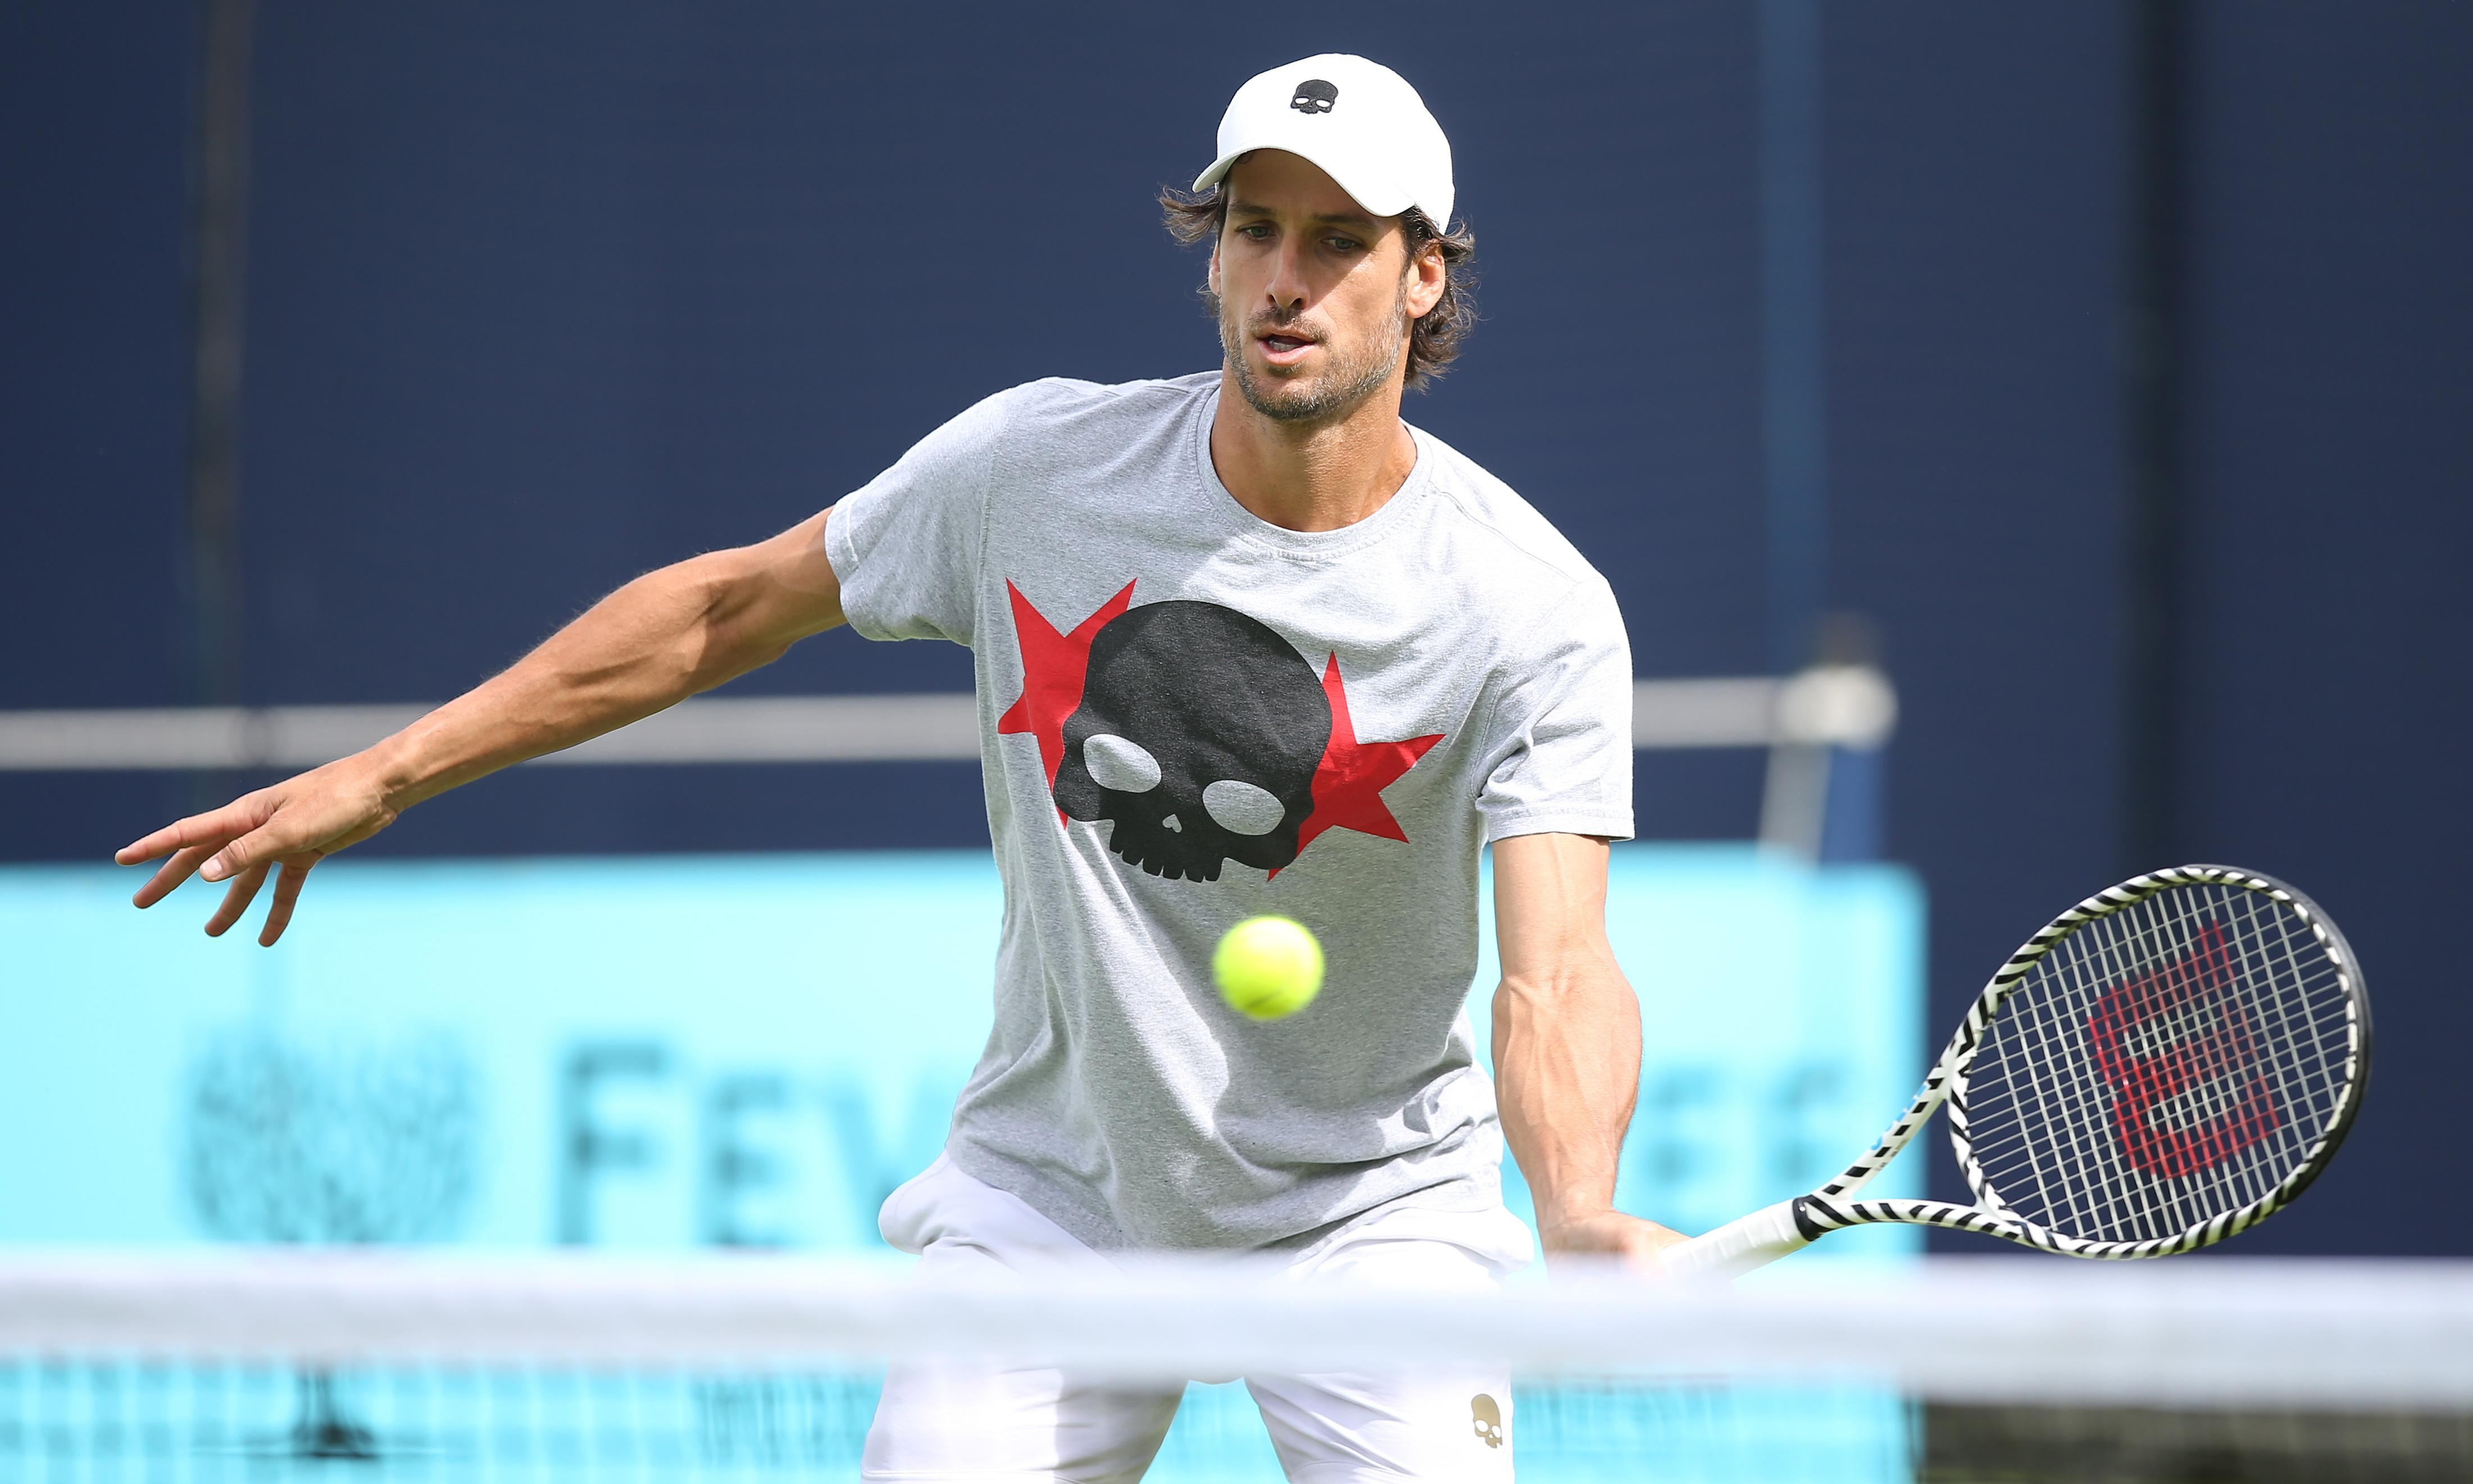 Feliciano López named in Wimbledon doubles match-fixing allegation